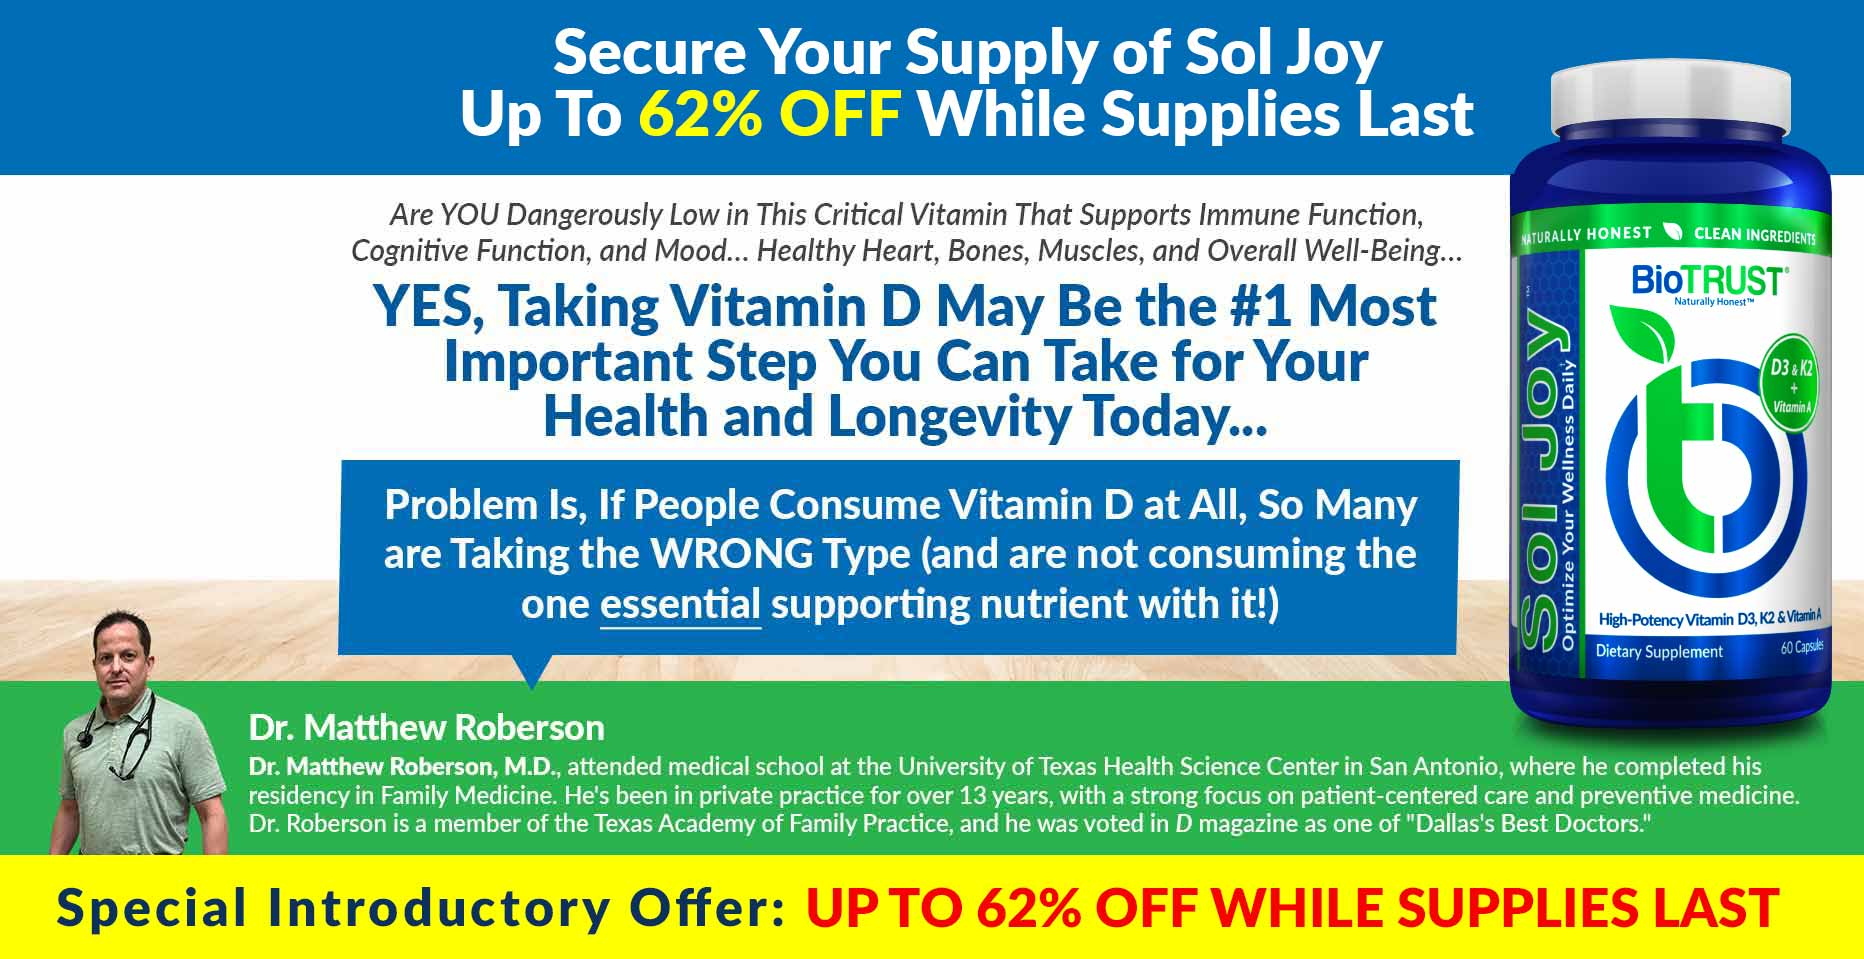 Secure Your Supply of Sol Joy